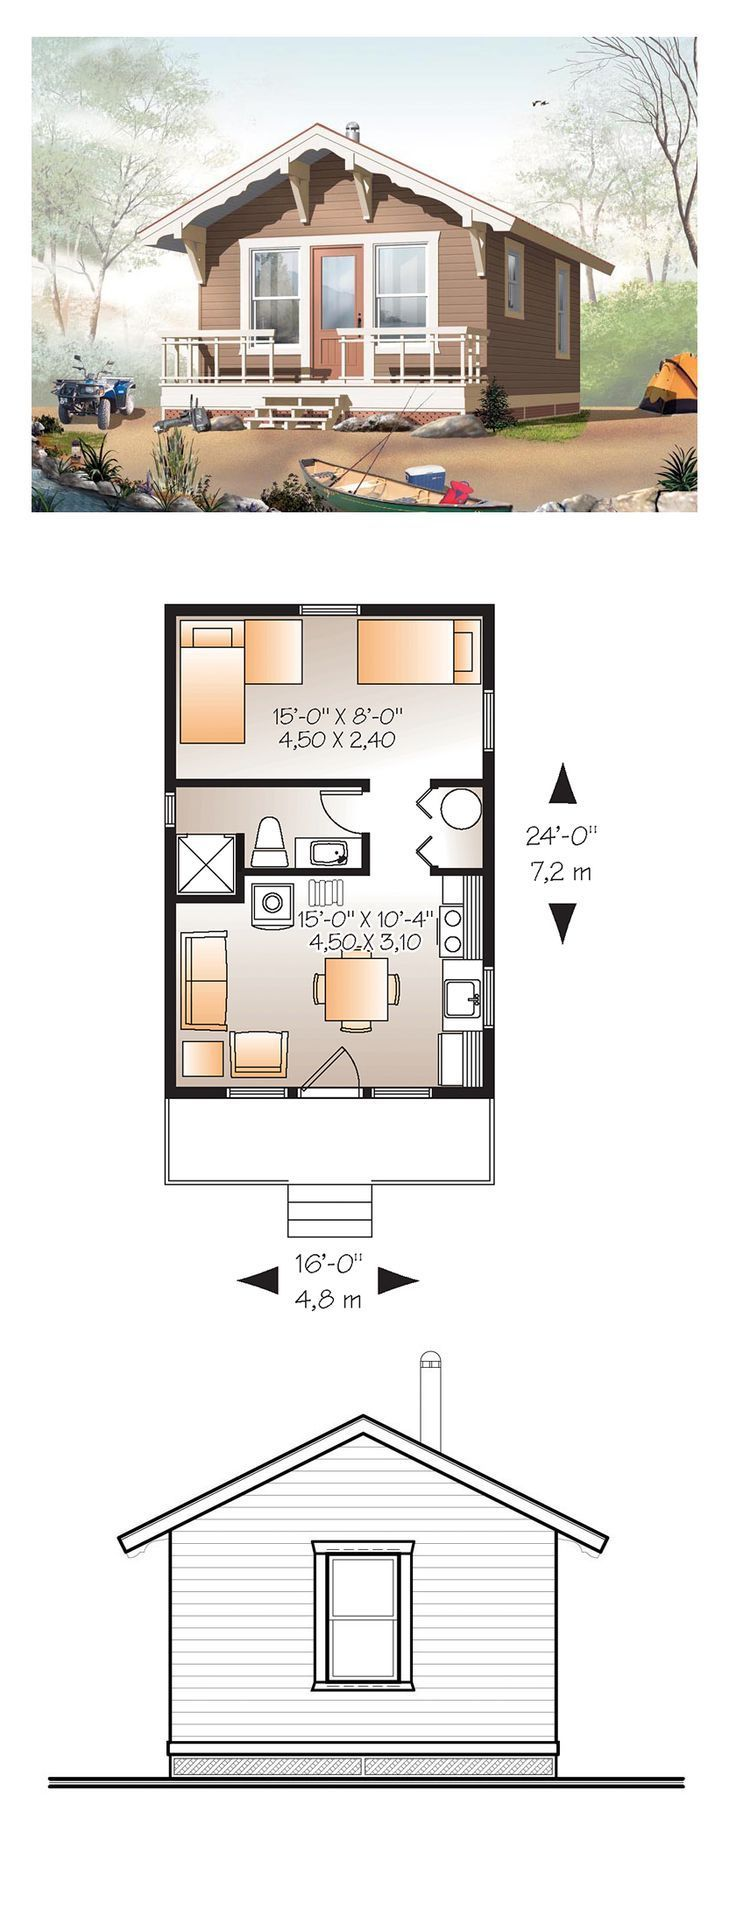 Big plans for tinyhouses the snug for Tiny house plans